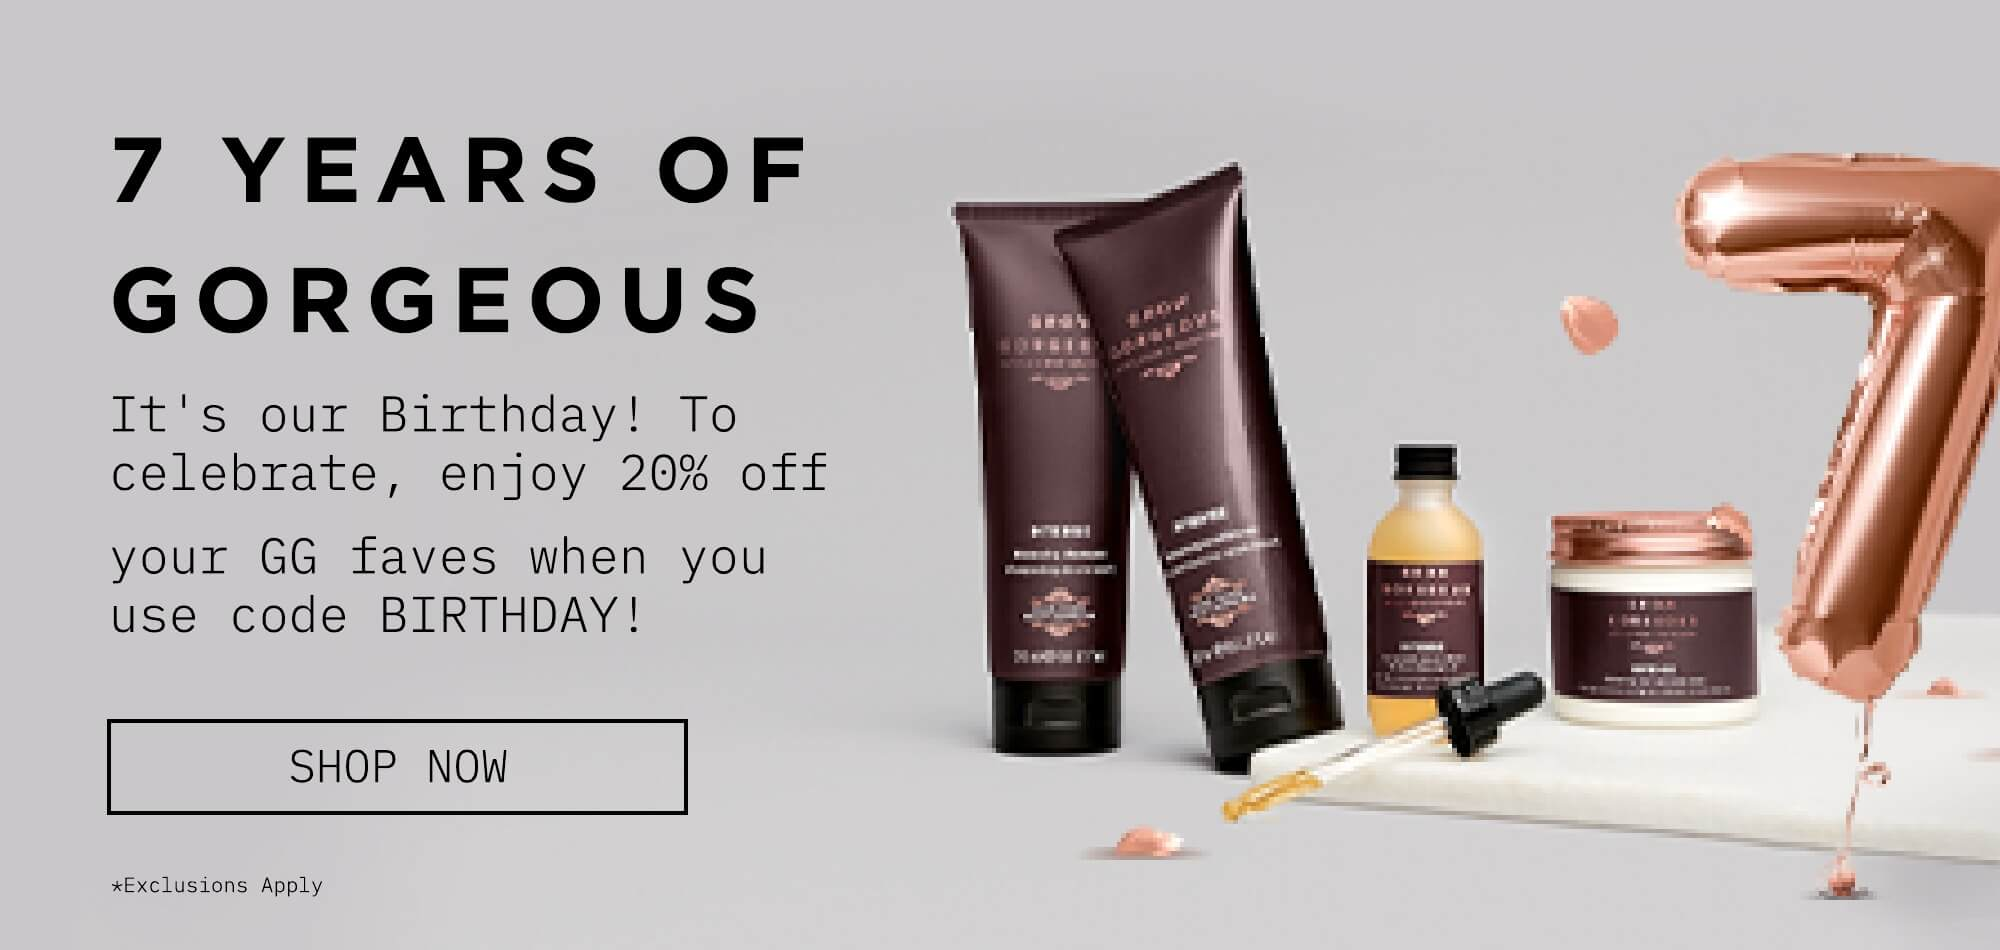 It's out birthday! Enjoy 20% off whit code BIRTHDAY! Click to view all